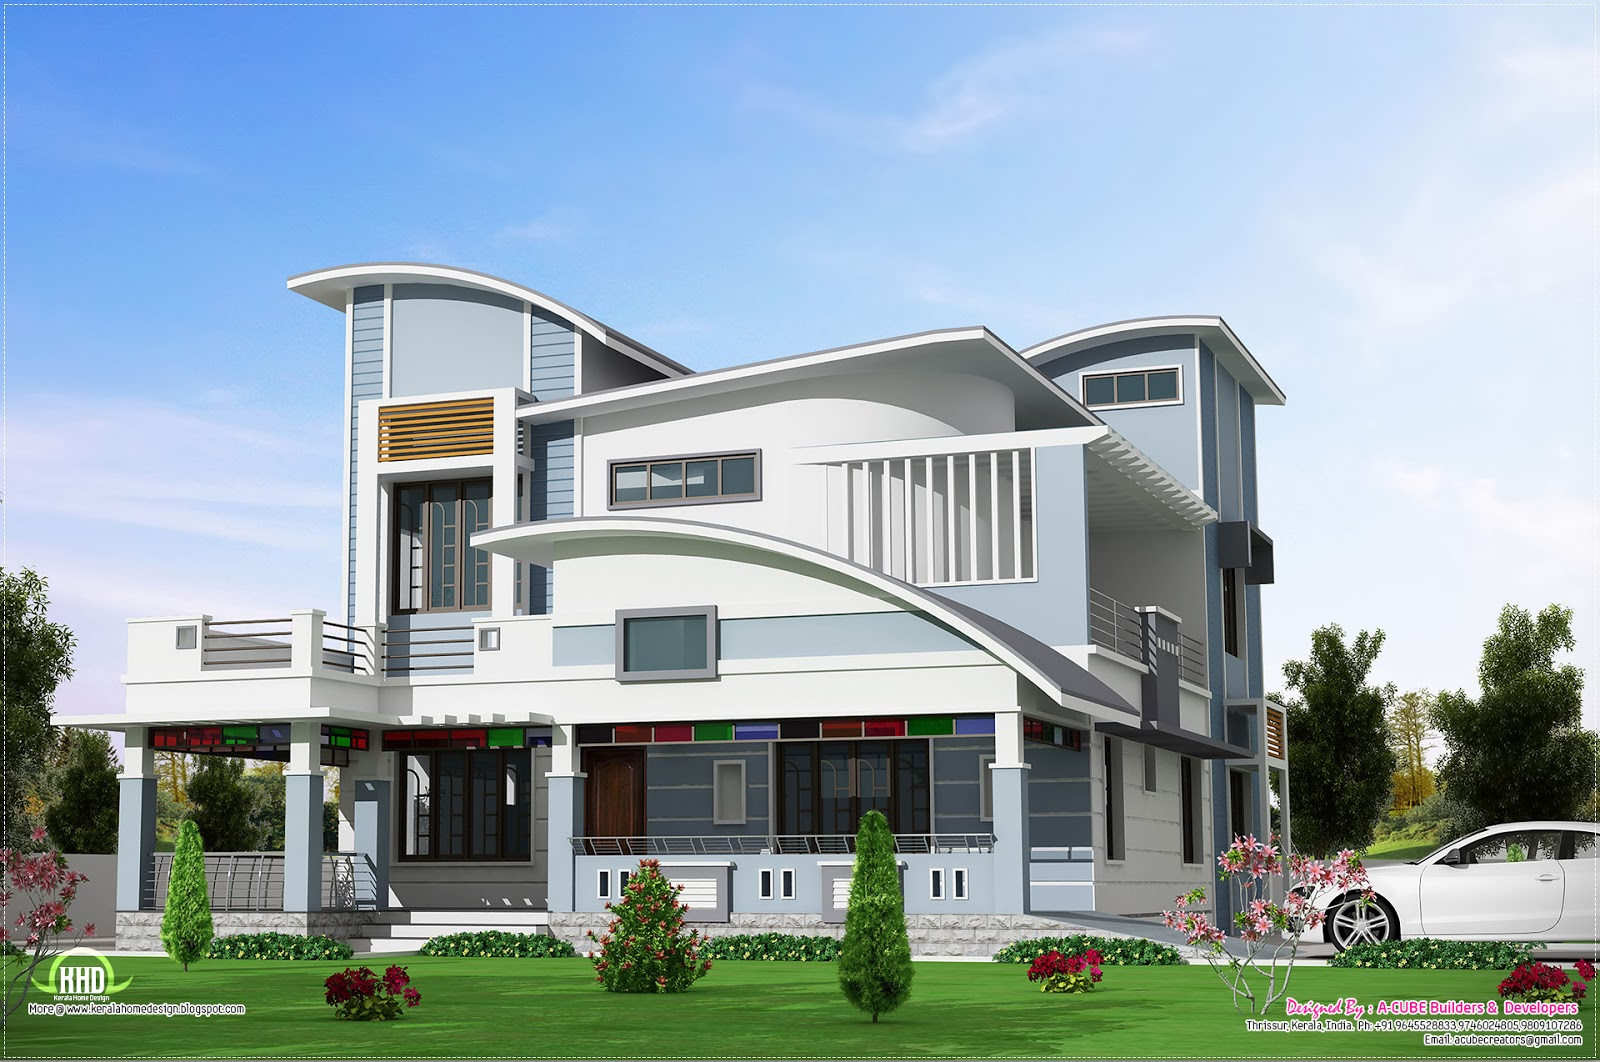 Modern unique style villa design home kerala plans - Modern villa designs ...